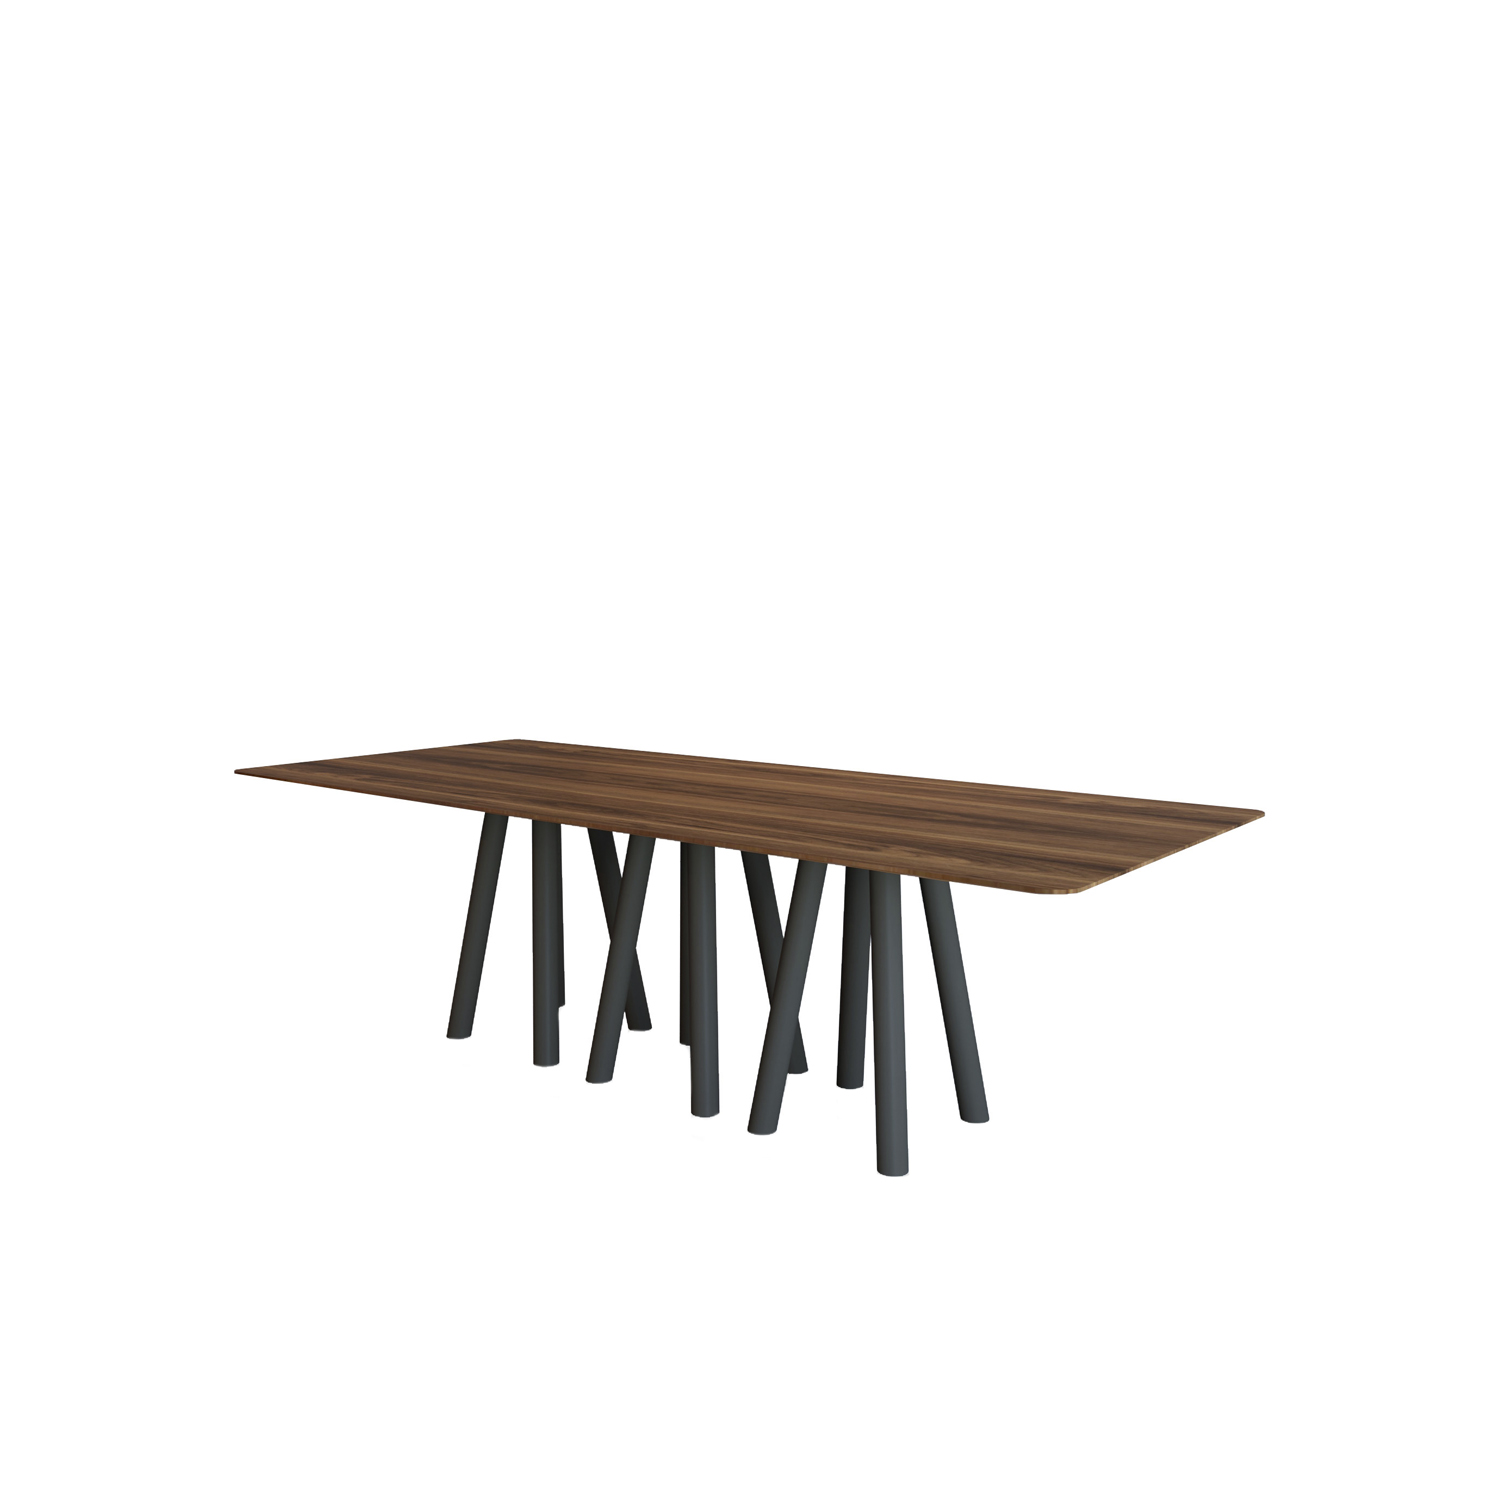 Mos-I-Ko 001 C Dining Table - <p>Table in two sizes with shaped rectangular top with thin<br />